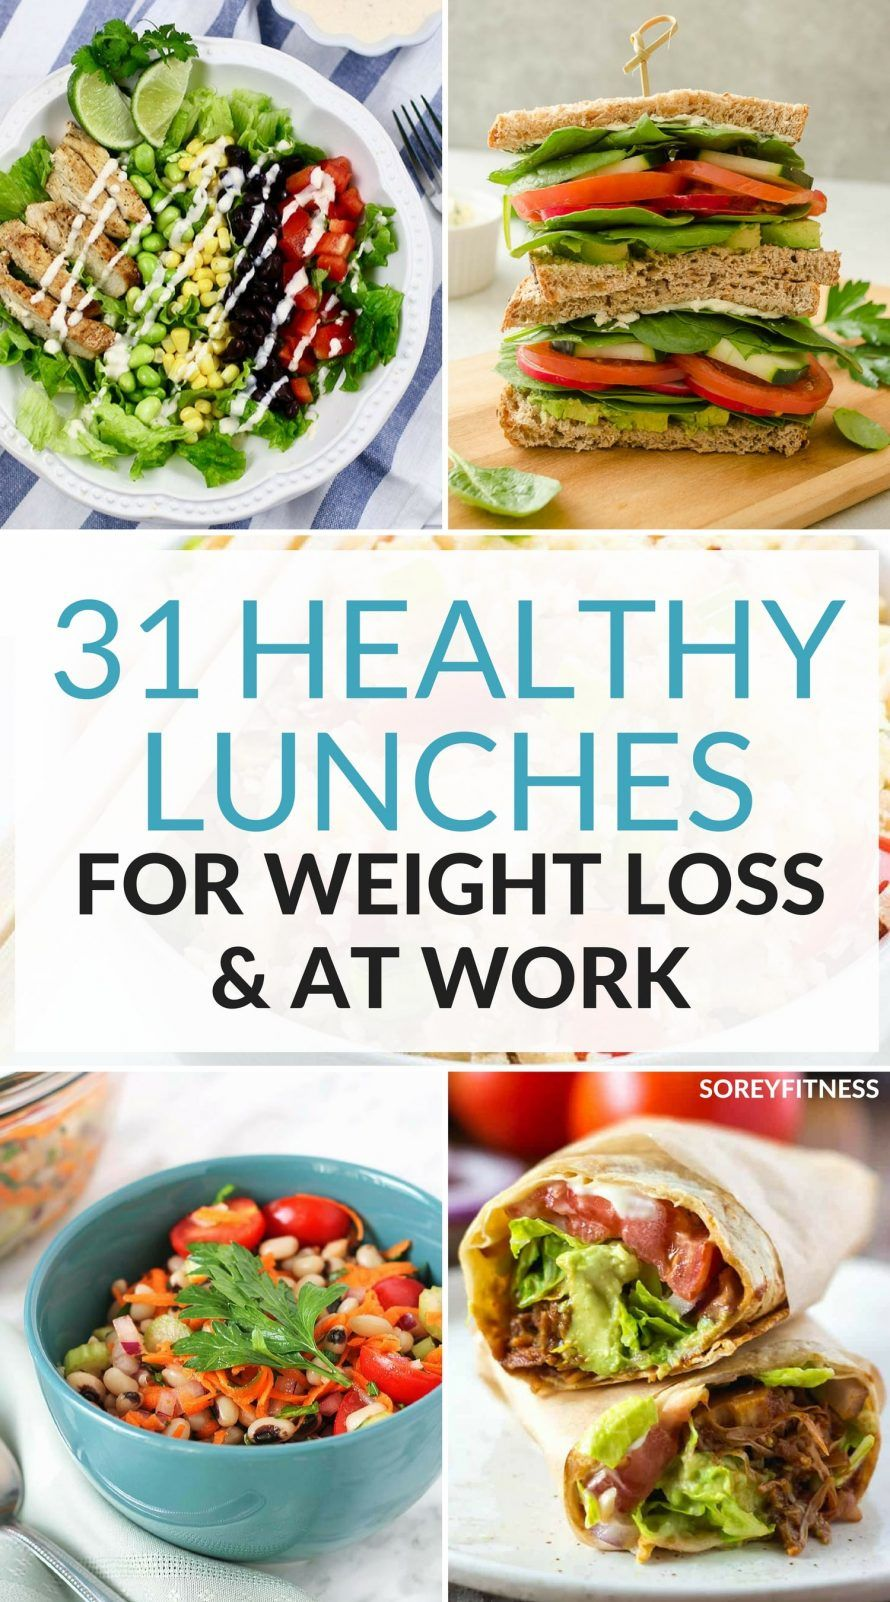 24 Lunch Recipes For Weight Loss